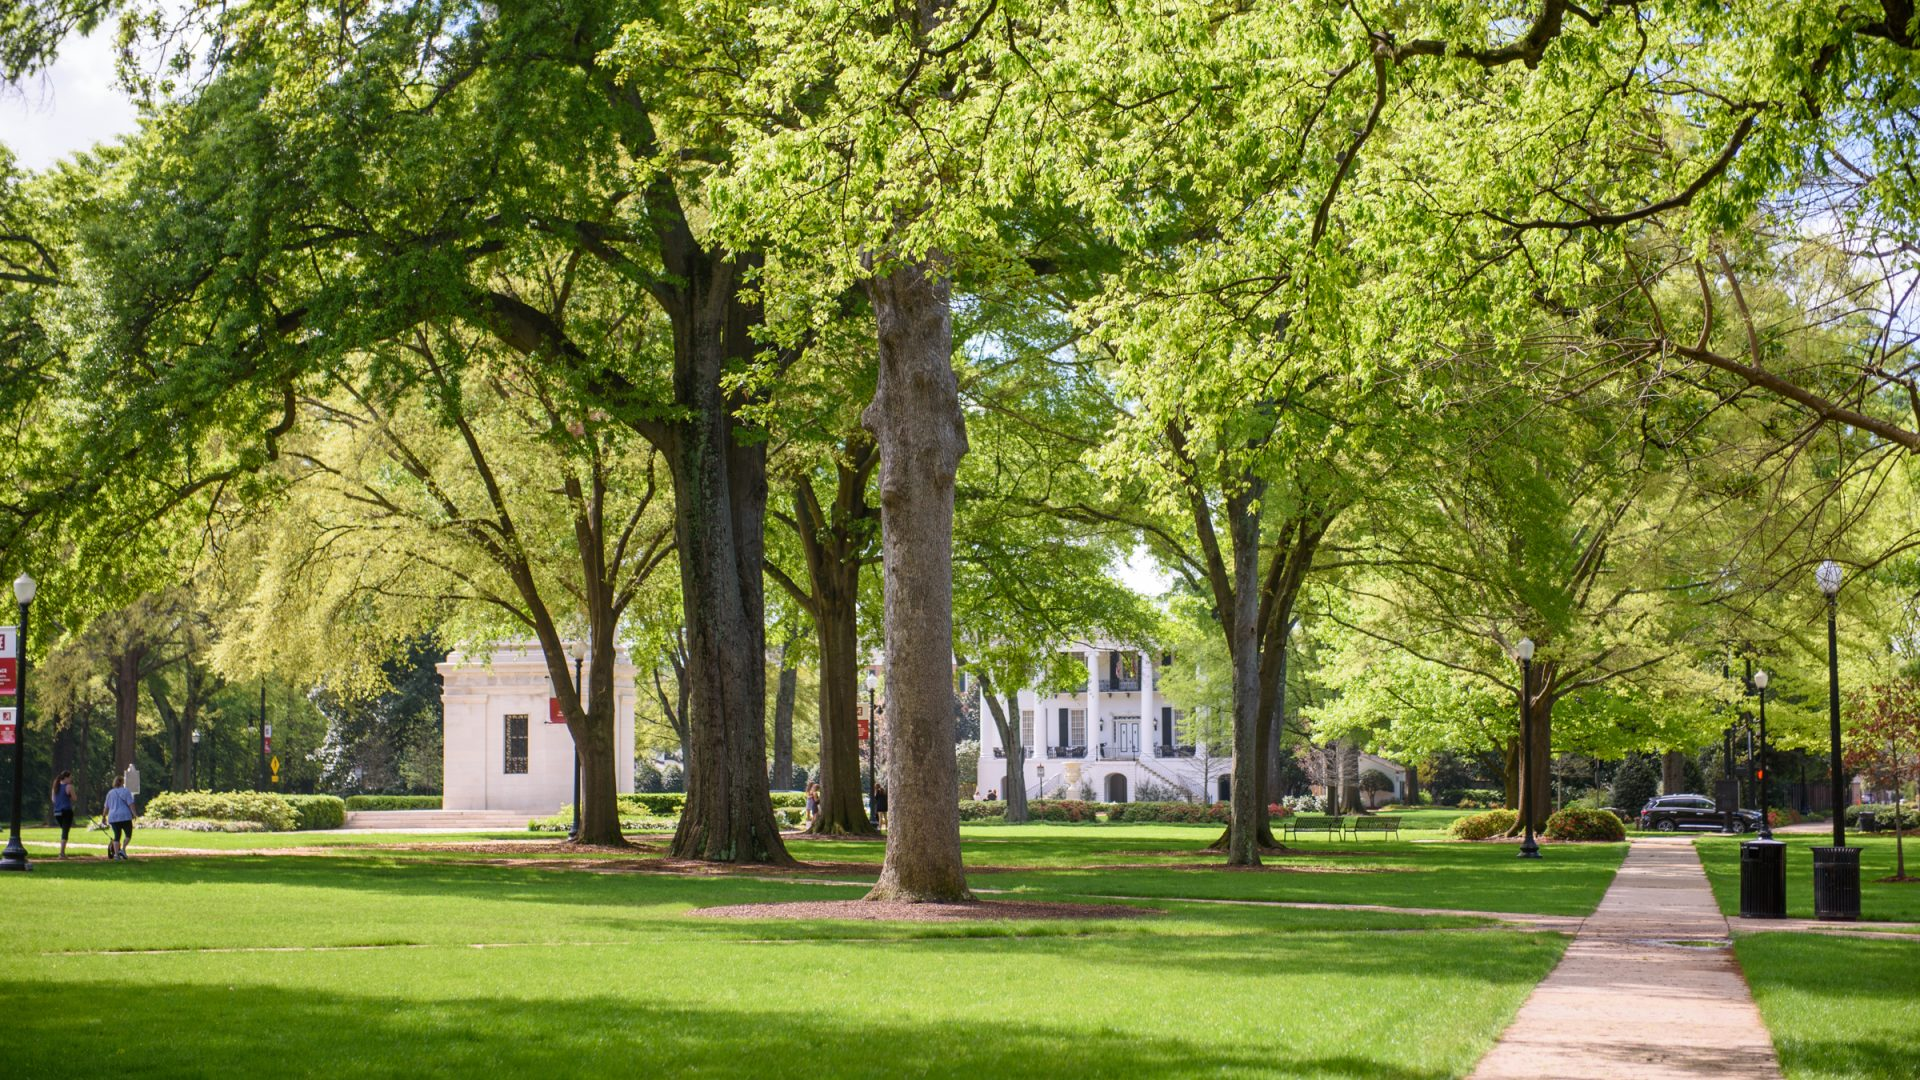 Campus Photo of UA Quad Trees